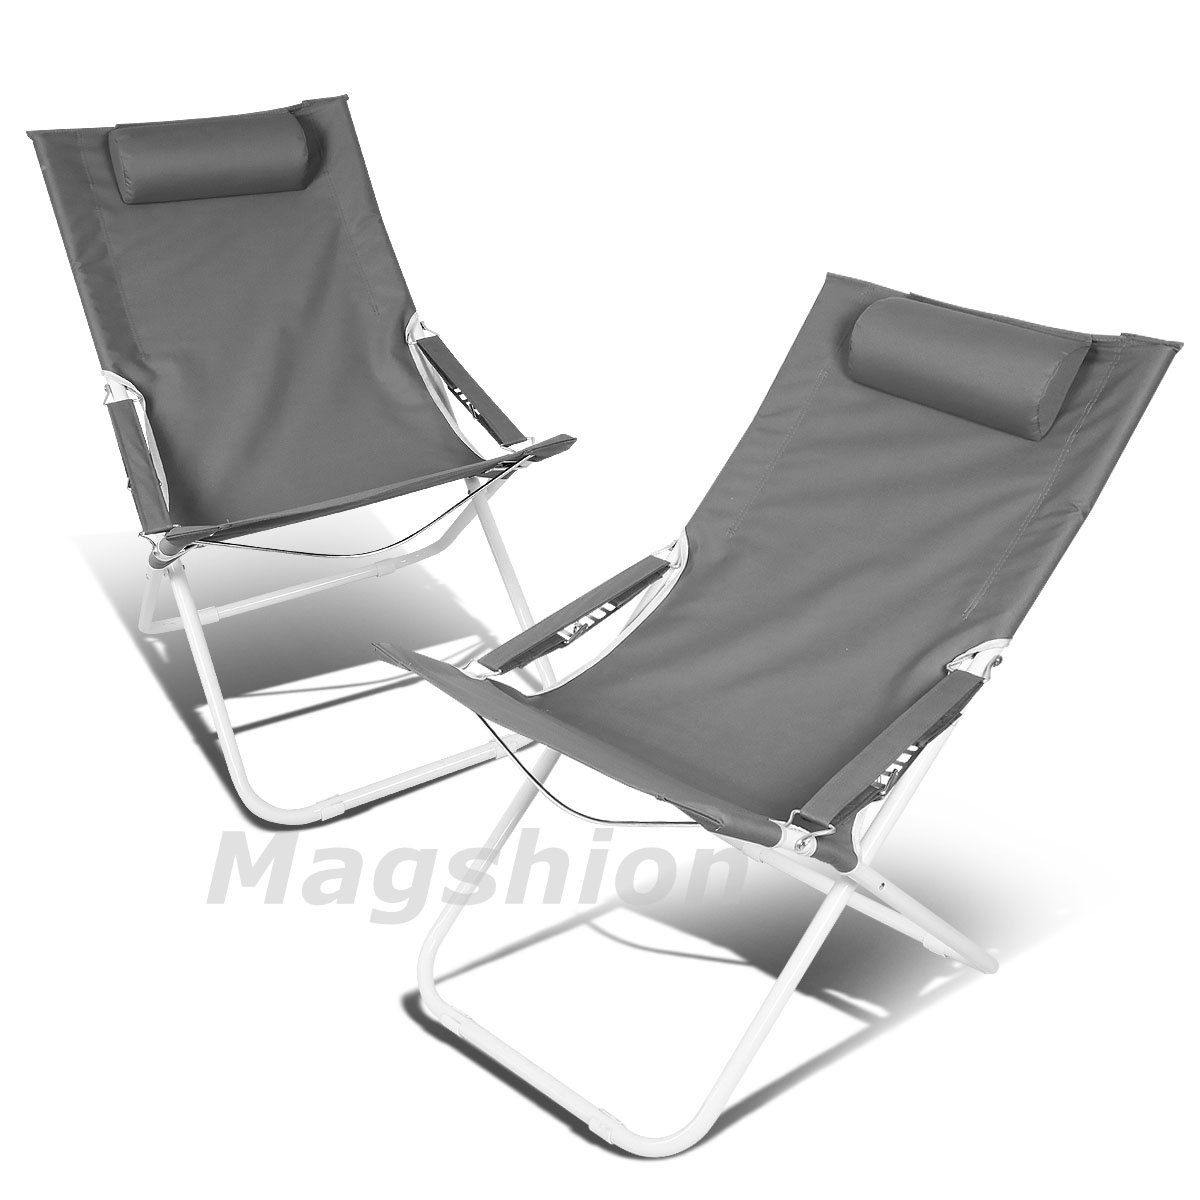 Magshion Deluxe 4 position Beach Camping Patio Outdoor Travel Recliners Chair Set of 2 Black